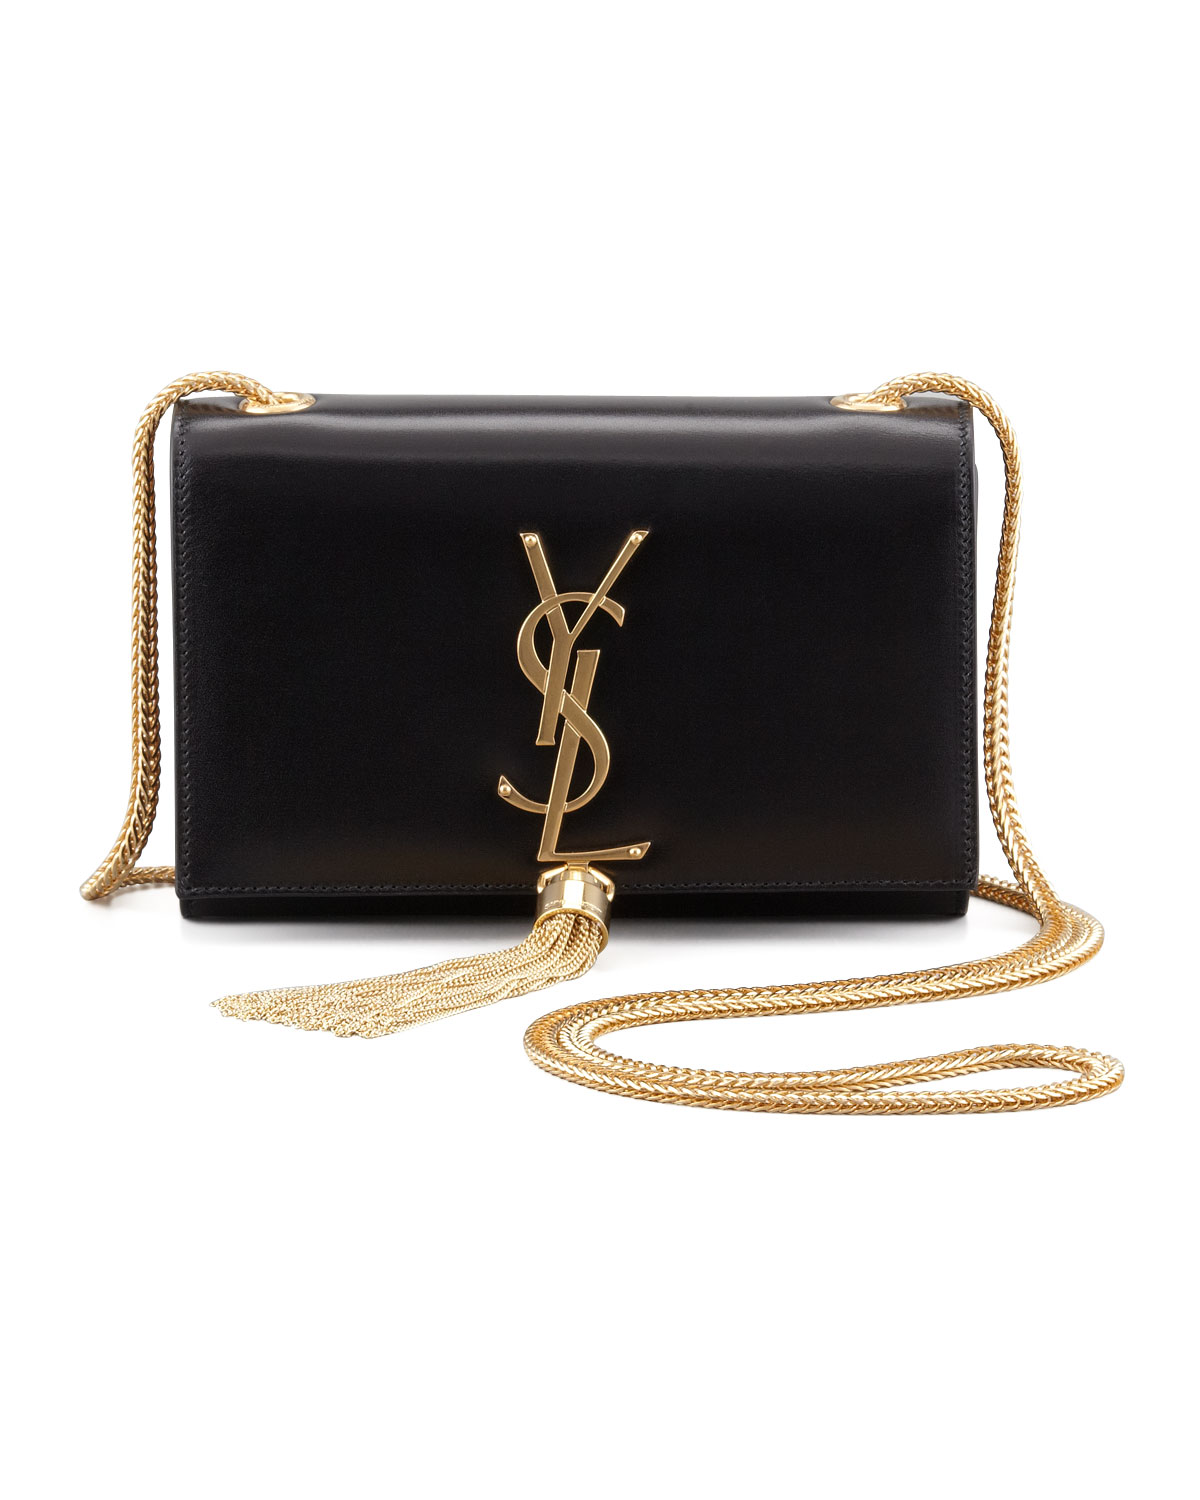 529180e00e Saint Laurent Cassandre Small Tassel Crossbody Bag